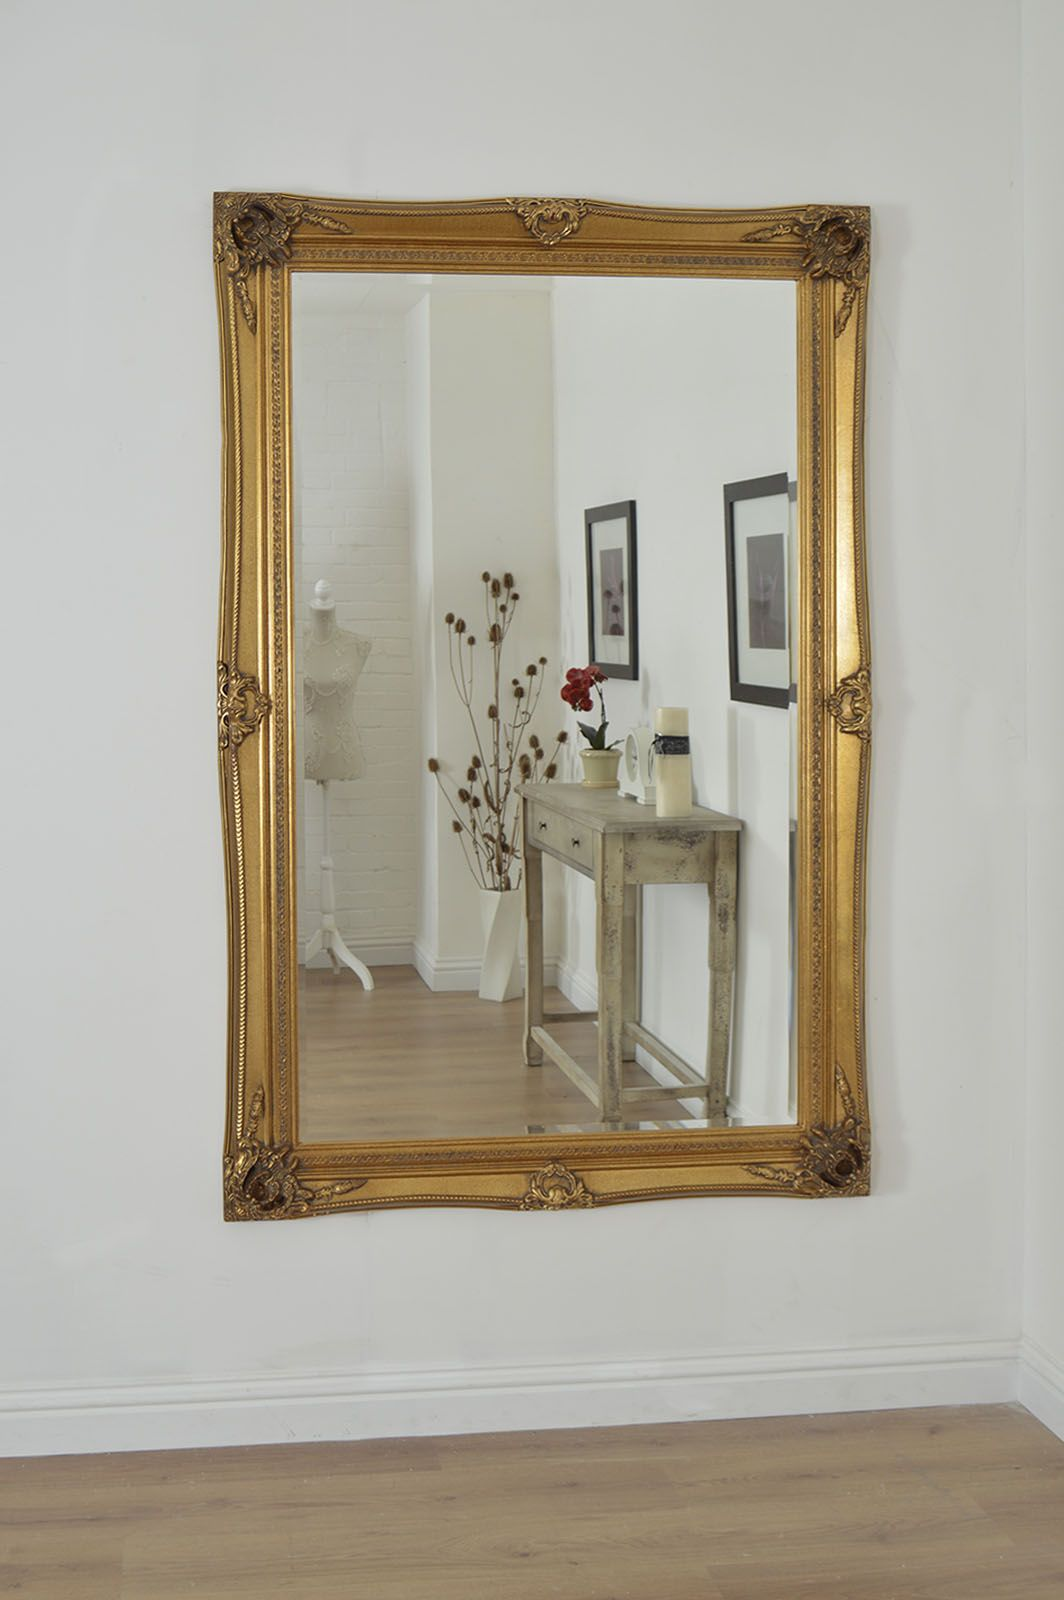 Extravagant Gold Ornate Wall Mirror Is A Beautiful Statement Piece For Any Room From The